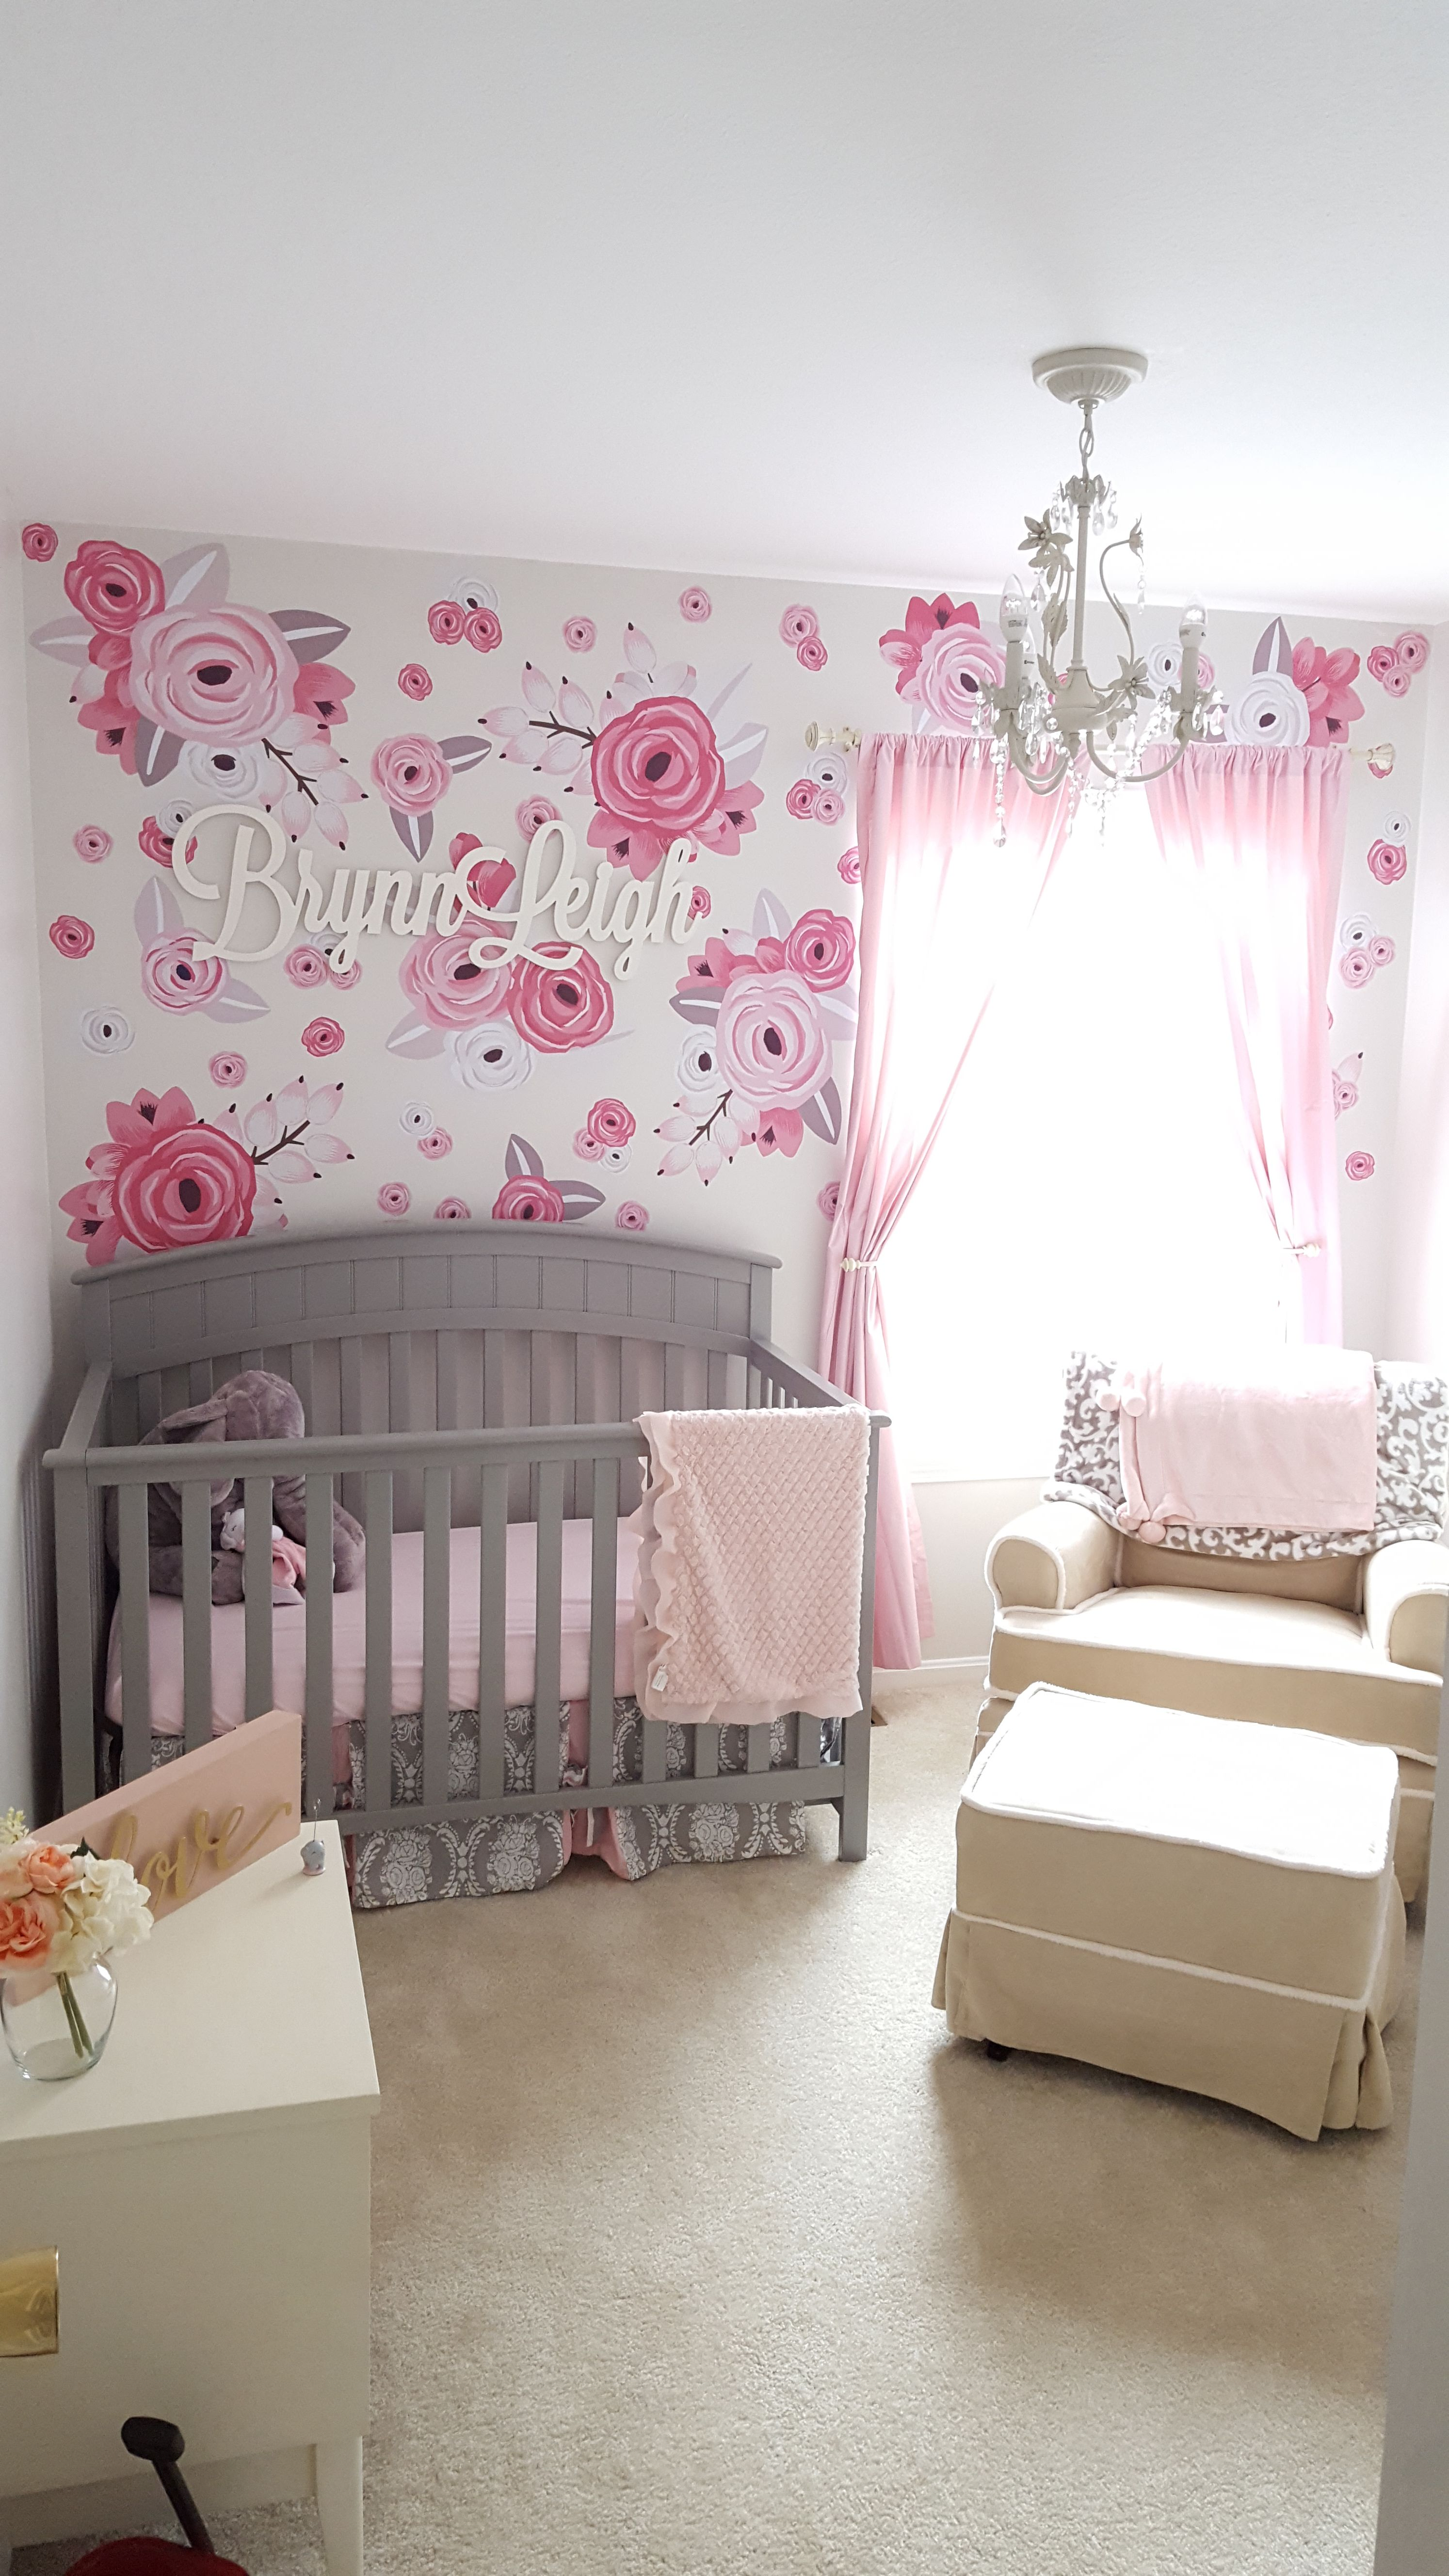 Loving our little girl nursery with urban wall floral